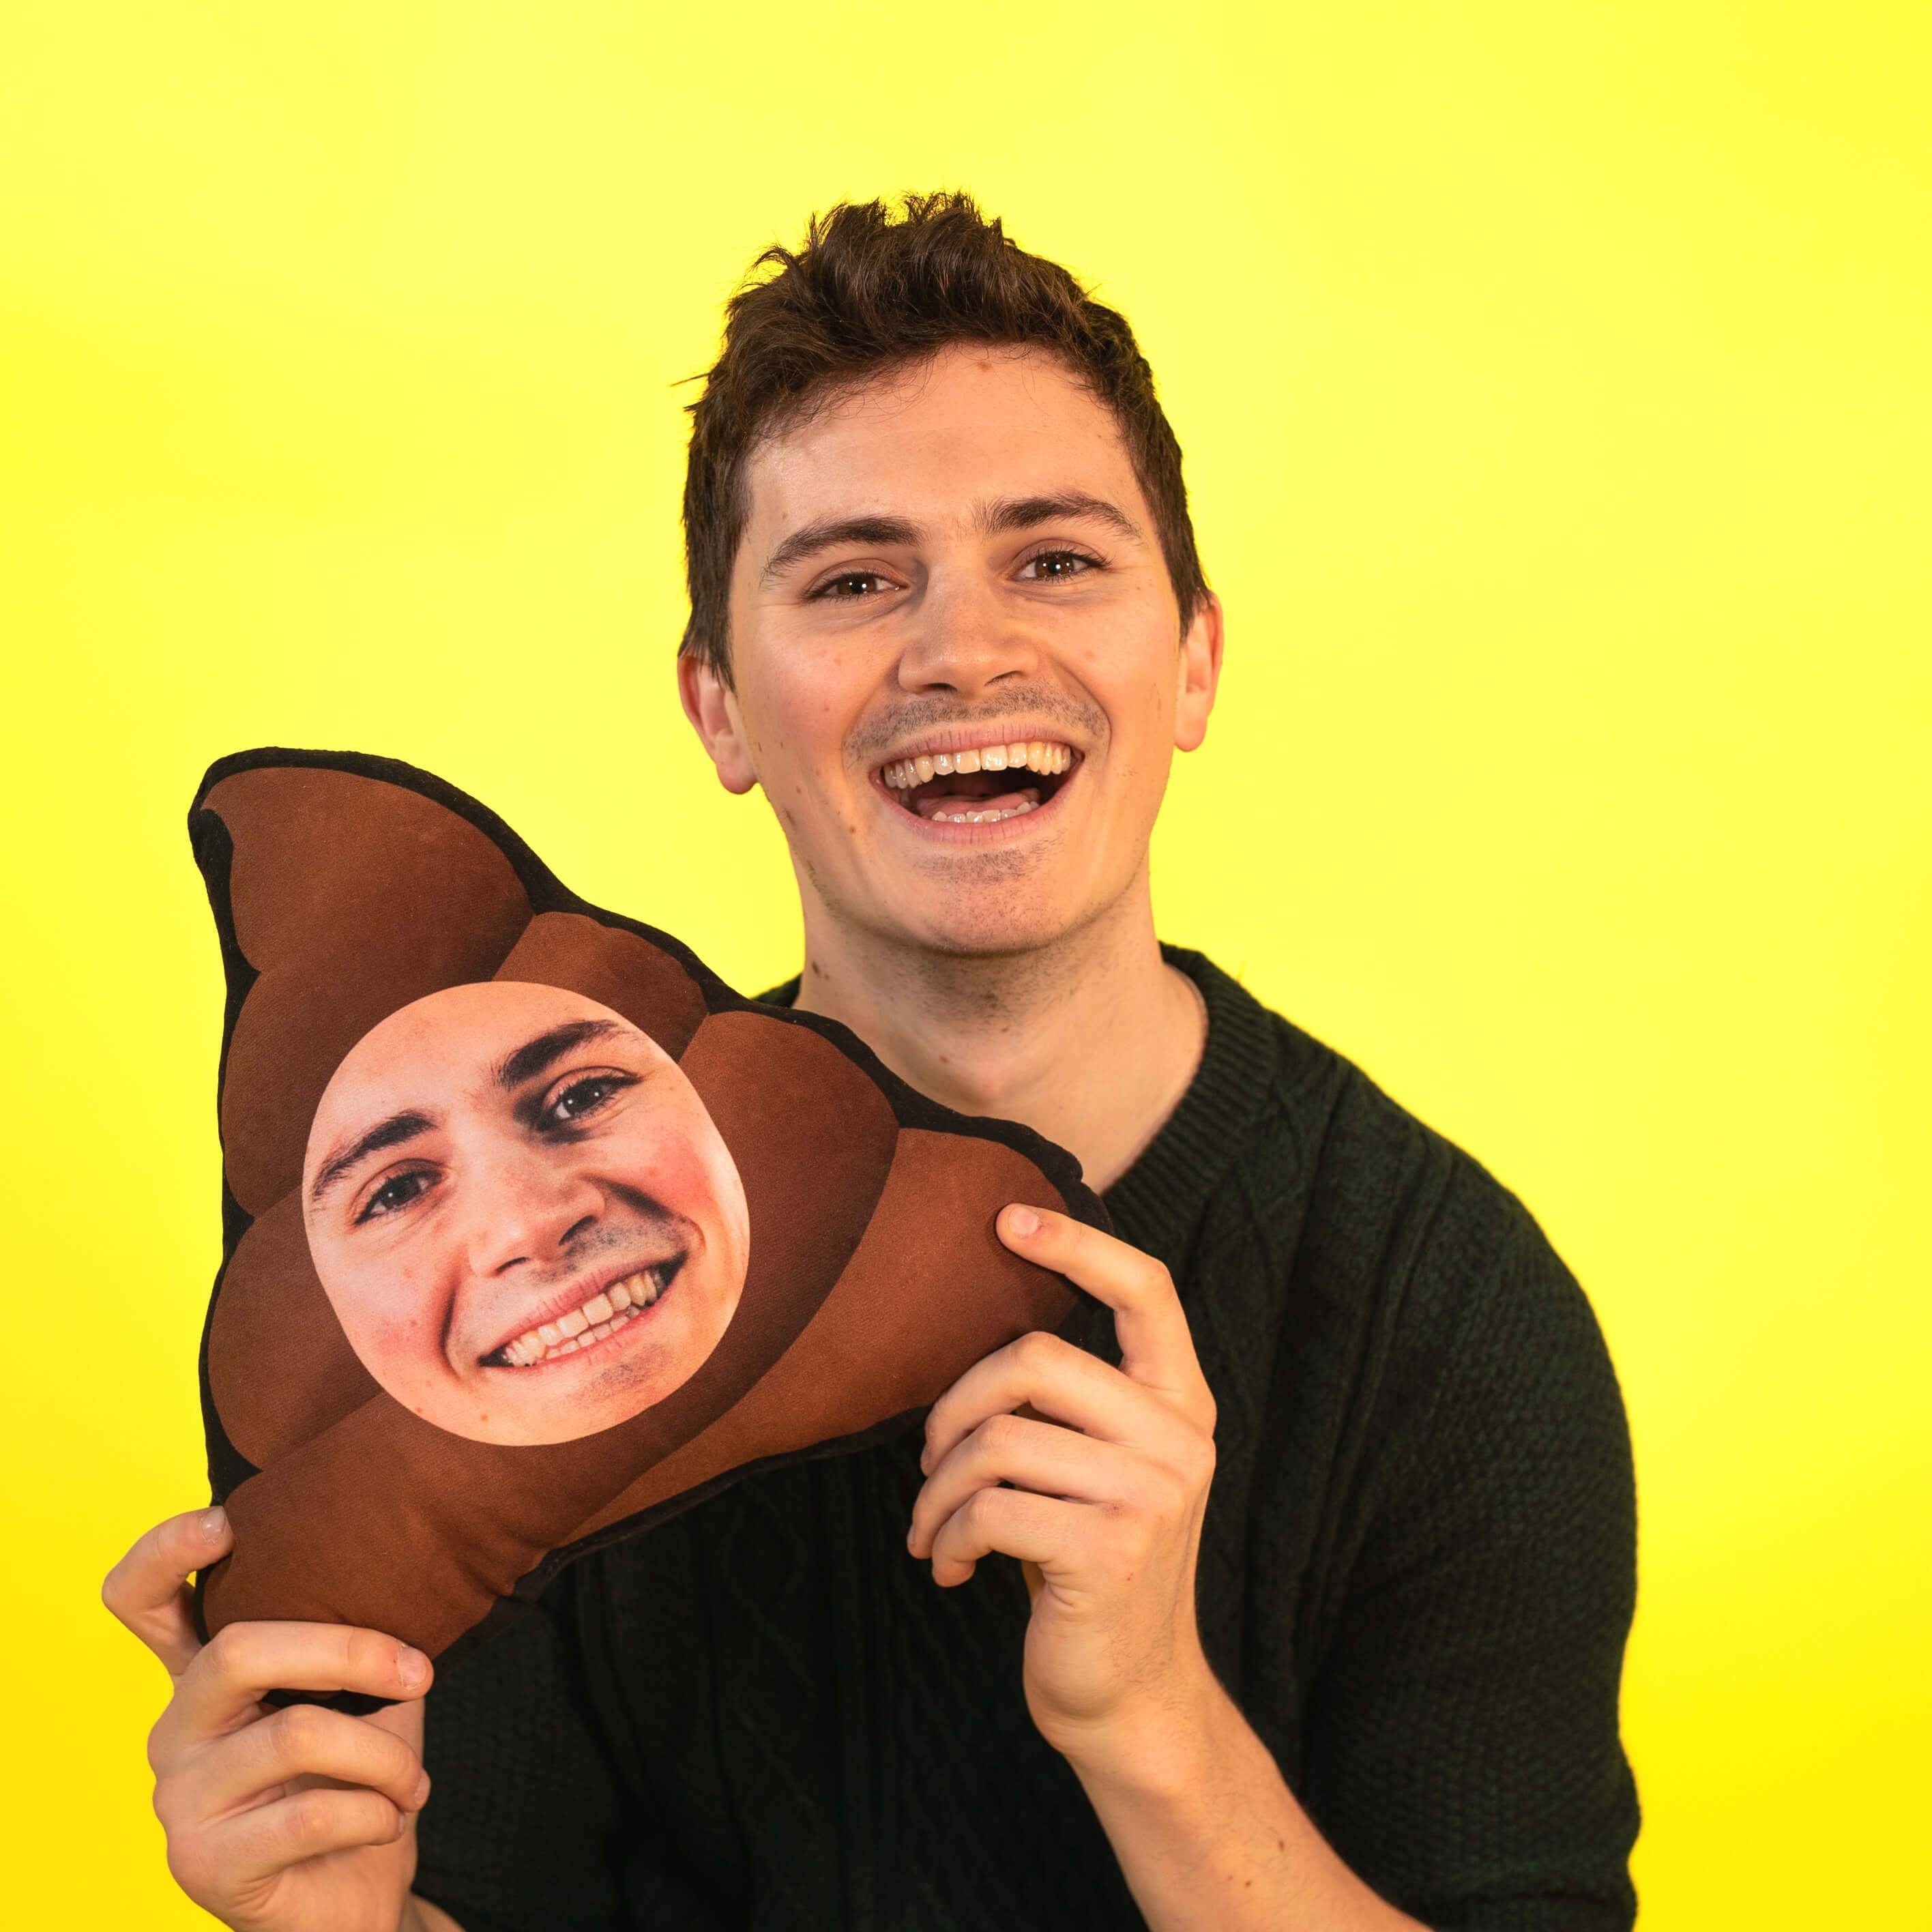 Poo Face - Personalized Emoji Pillow (4491511464041)